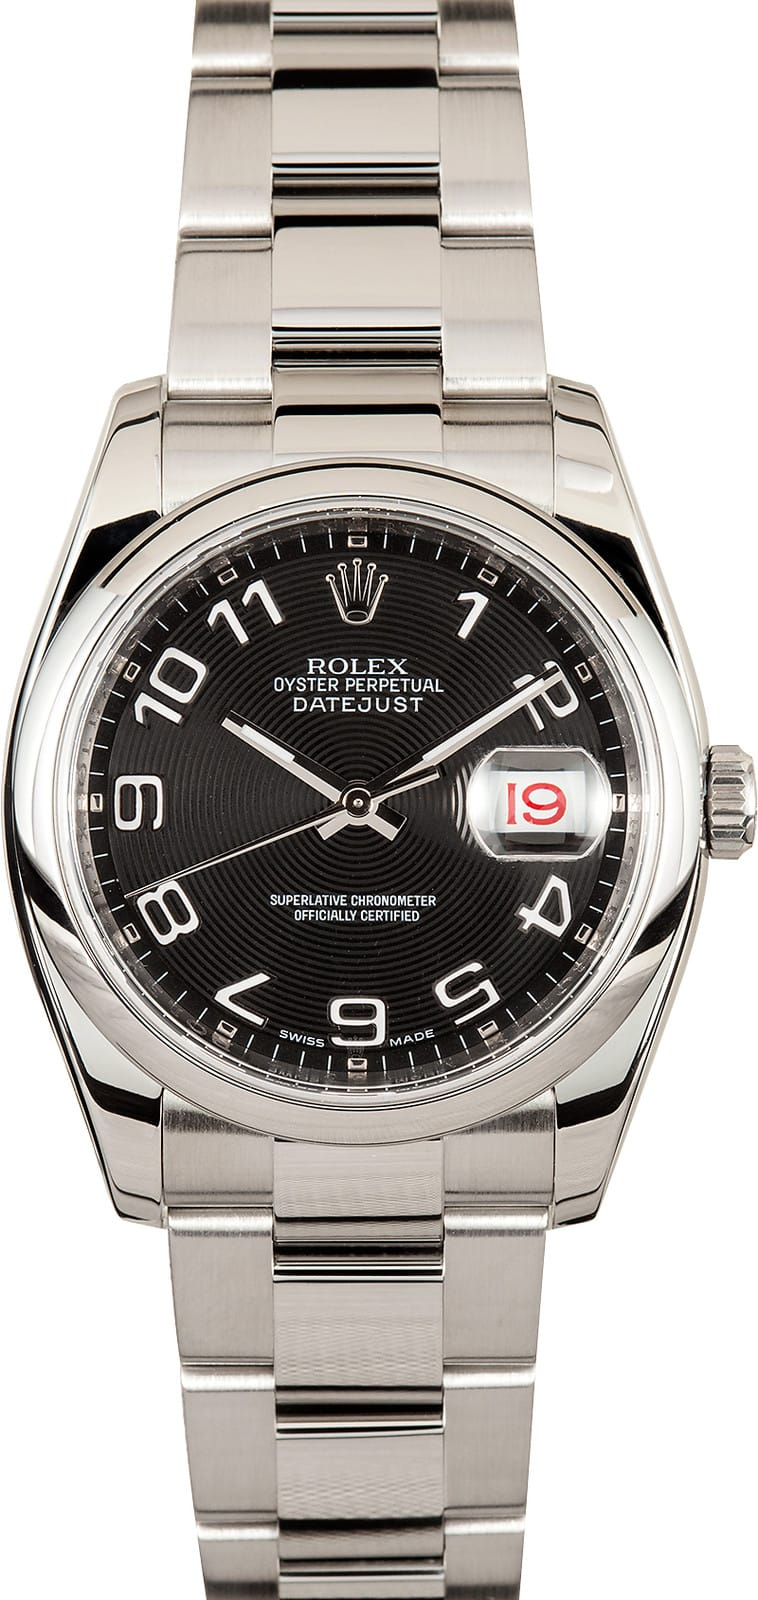 Cellini Watch Men's Rolex Datejust Watch Black Dial 116200 - Bob's Watches